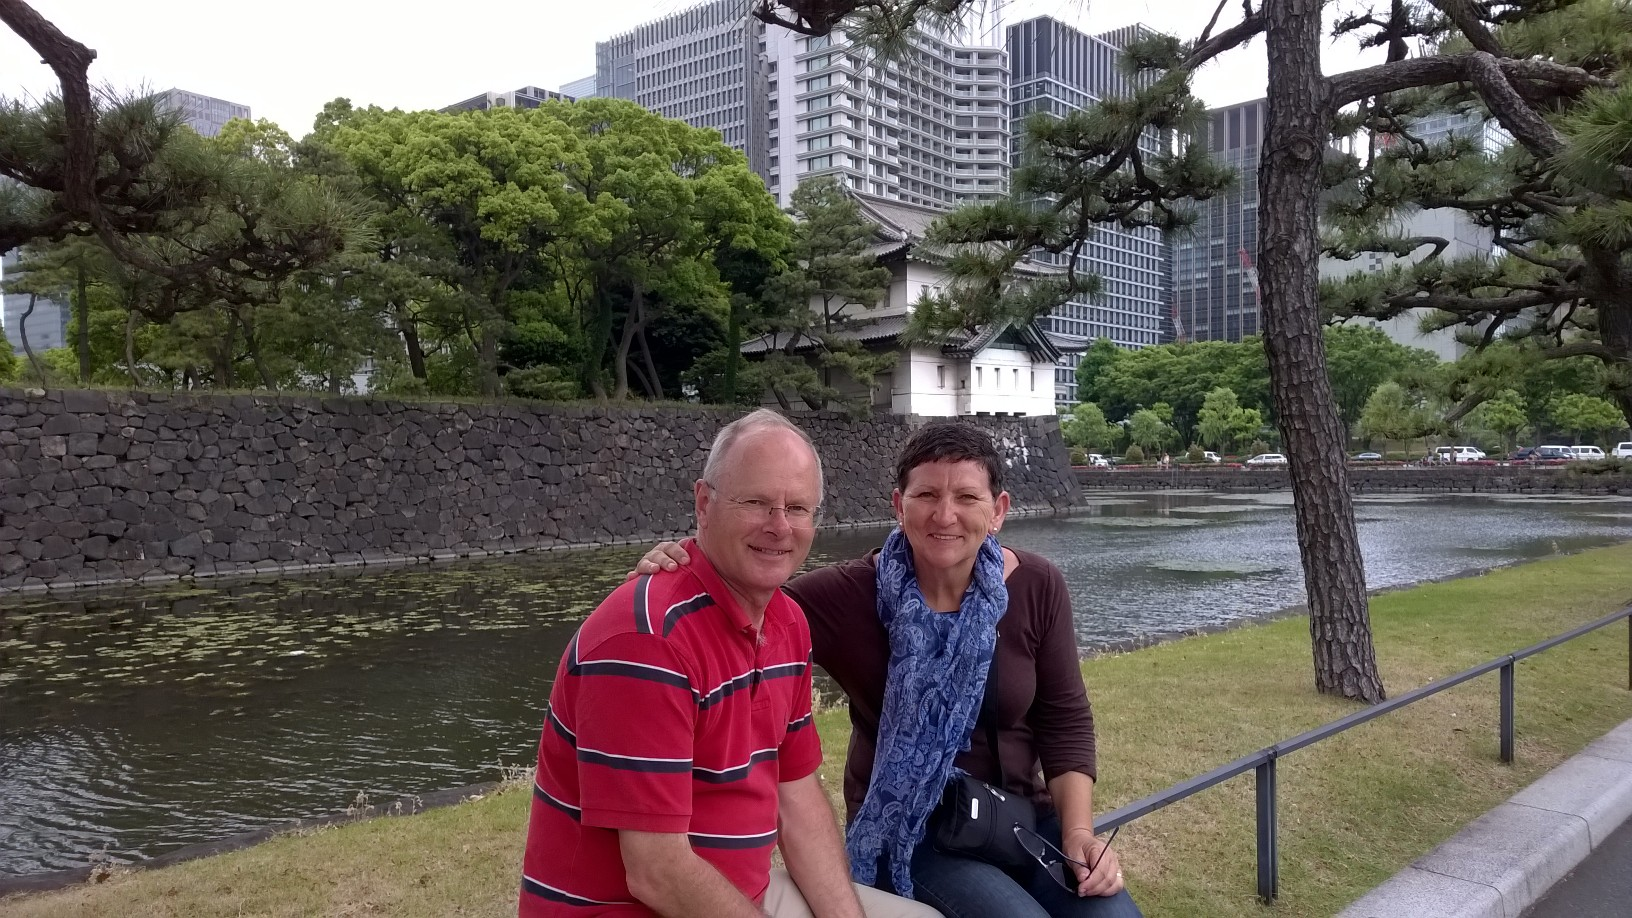 The Imperial Palace with the Tokyo business district in the background